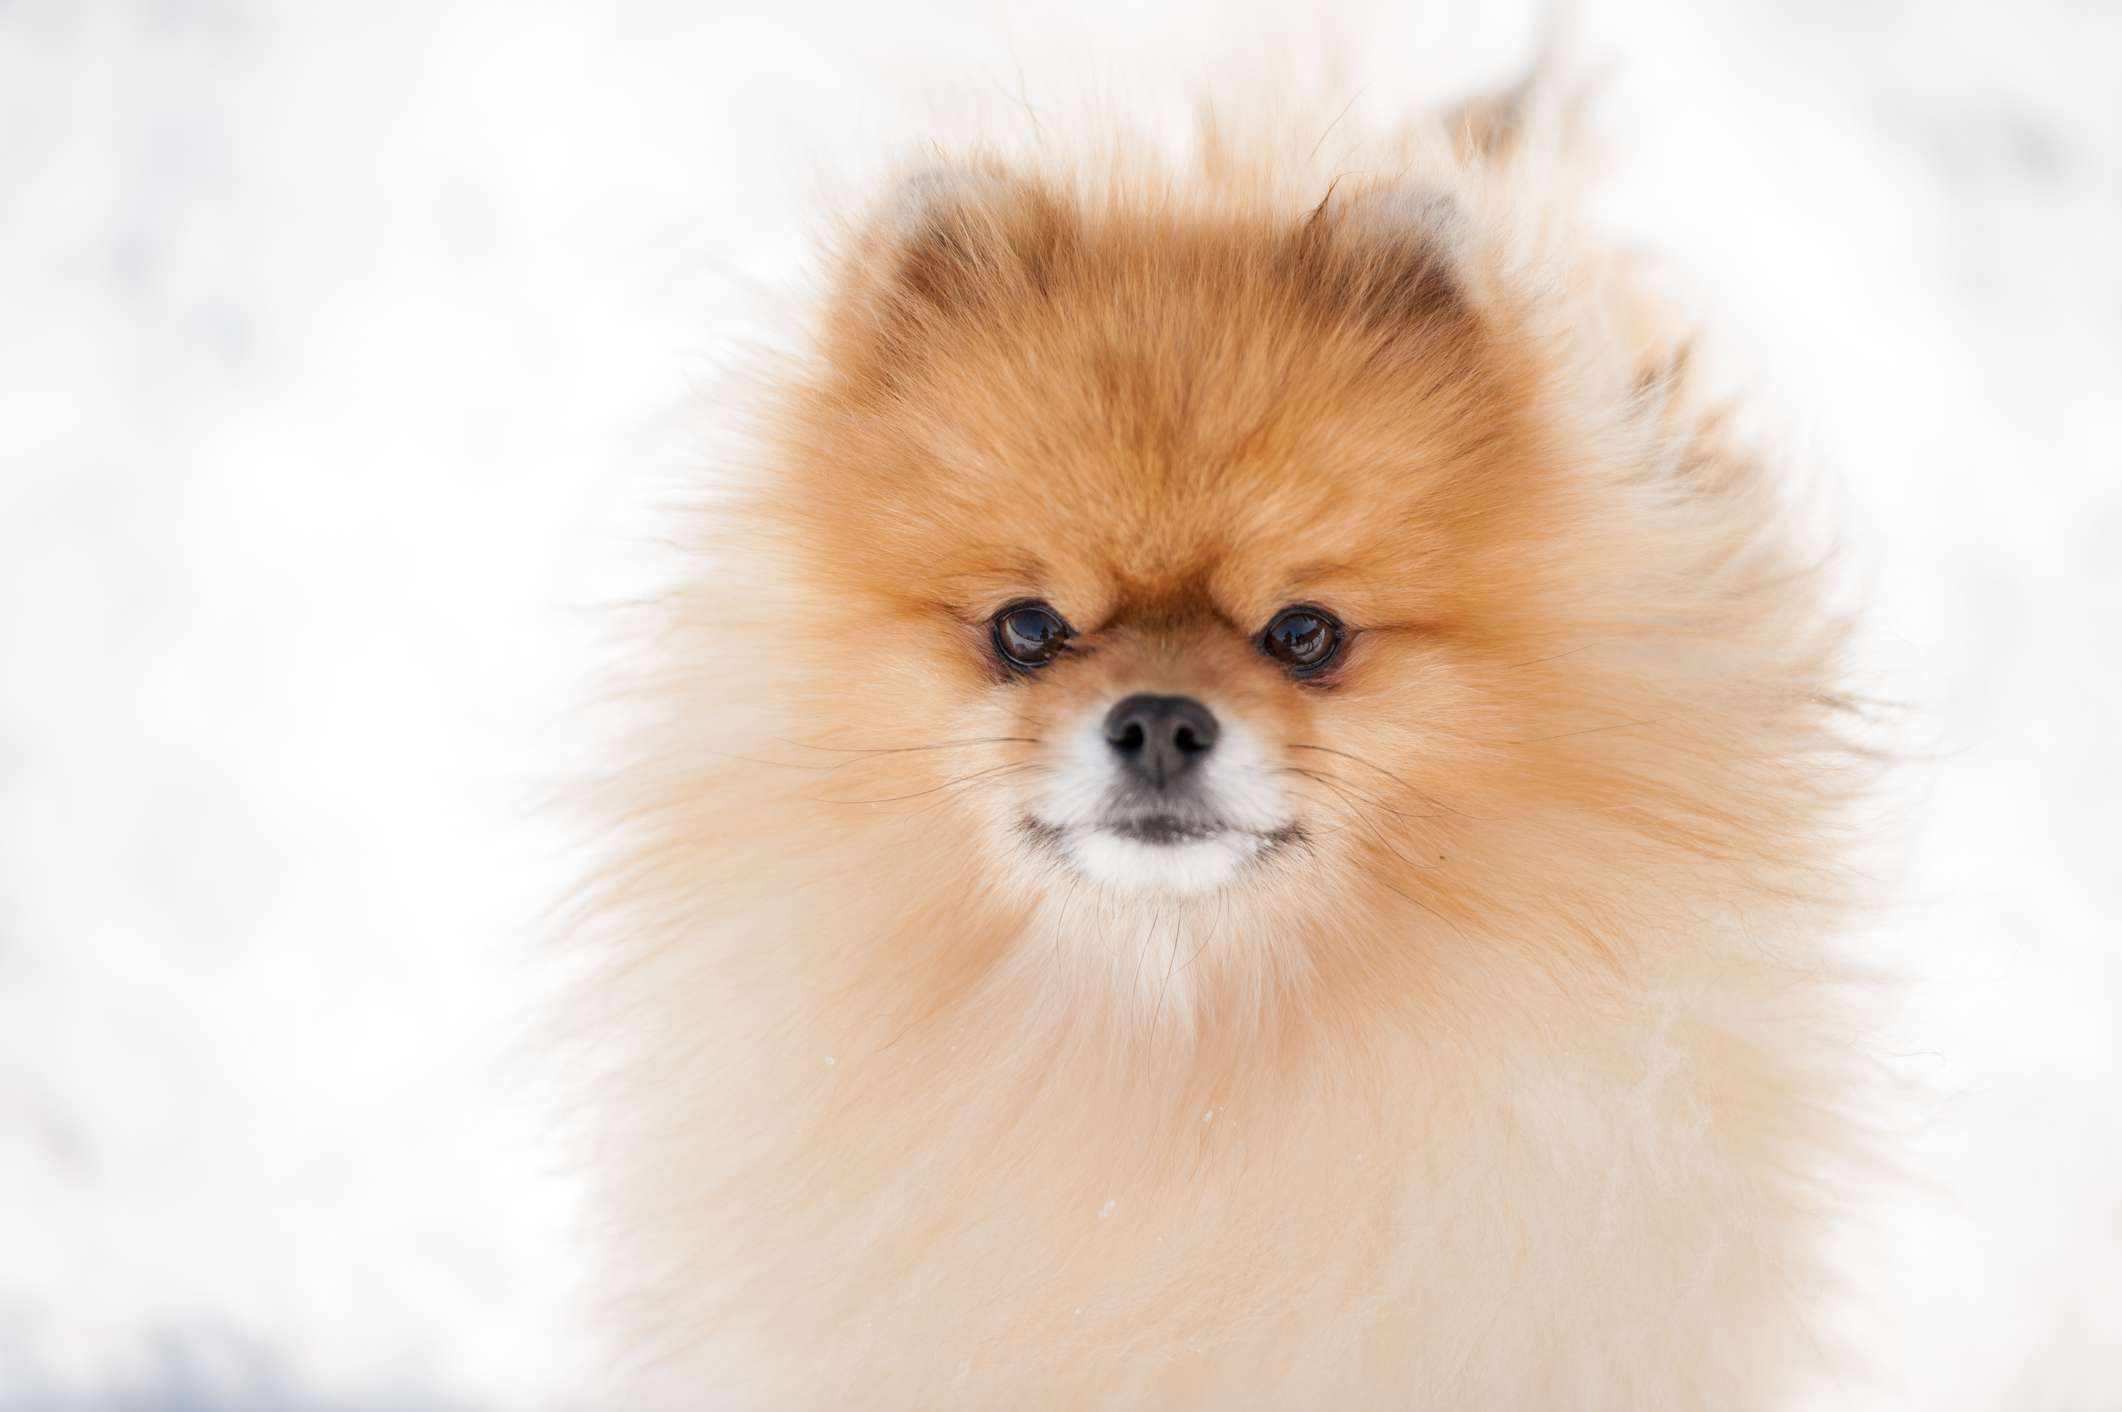 Pomeranian against a white background